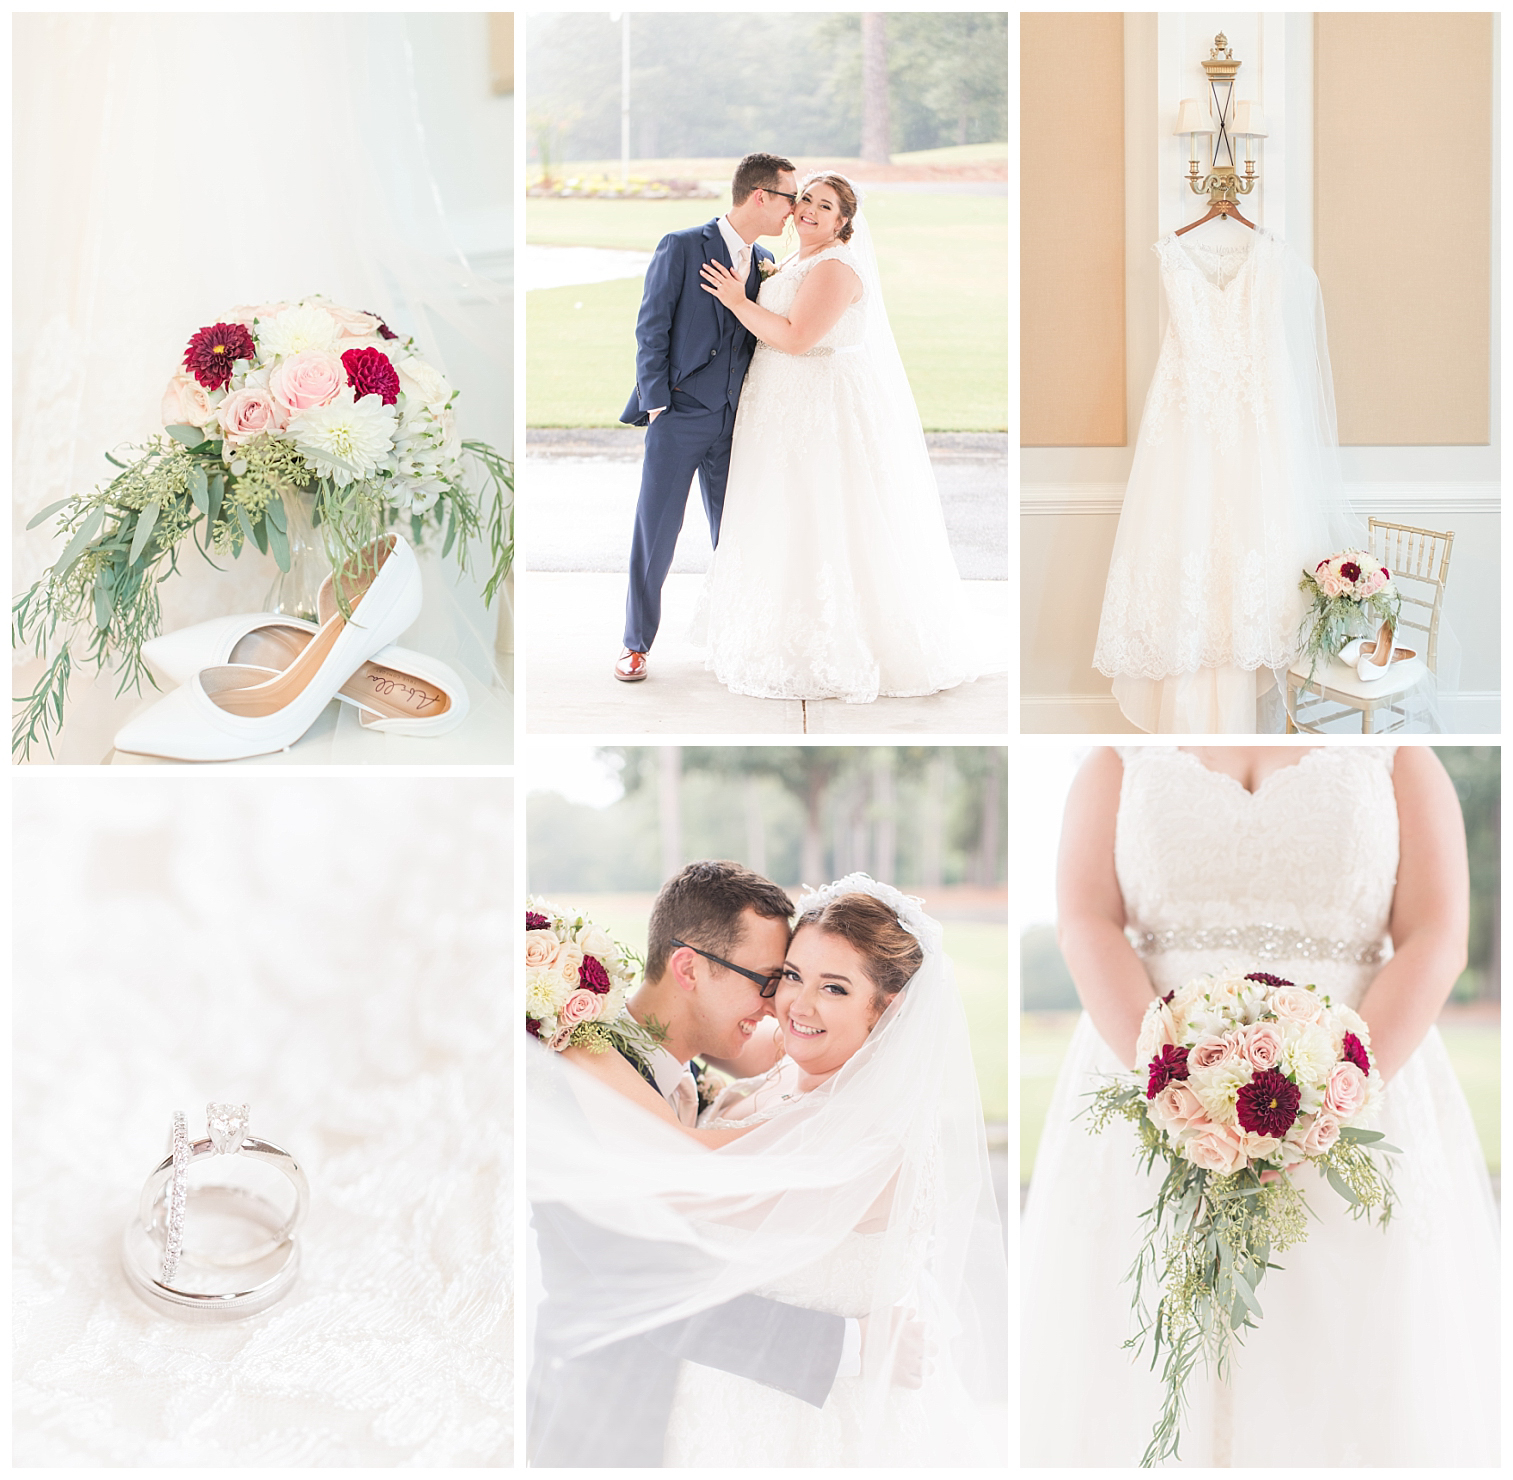 Emily & Chris | Romantic Fall Wedding | Fredericksburg VA Wedding Photographers